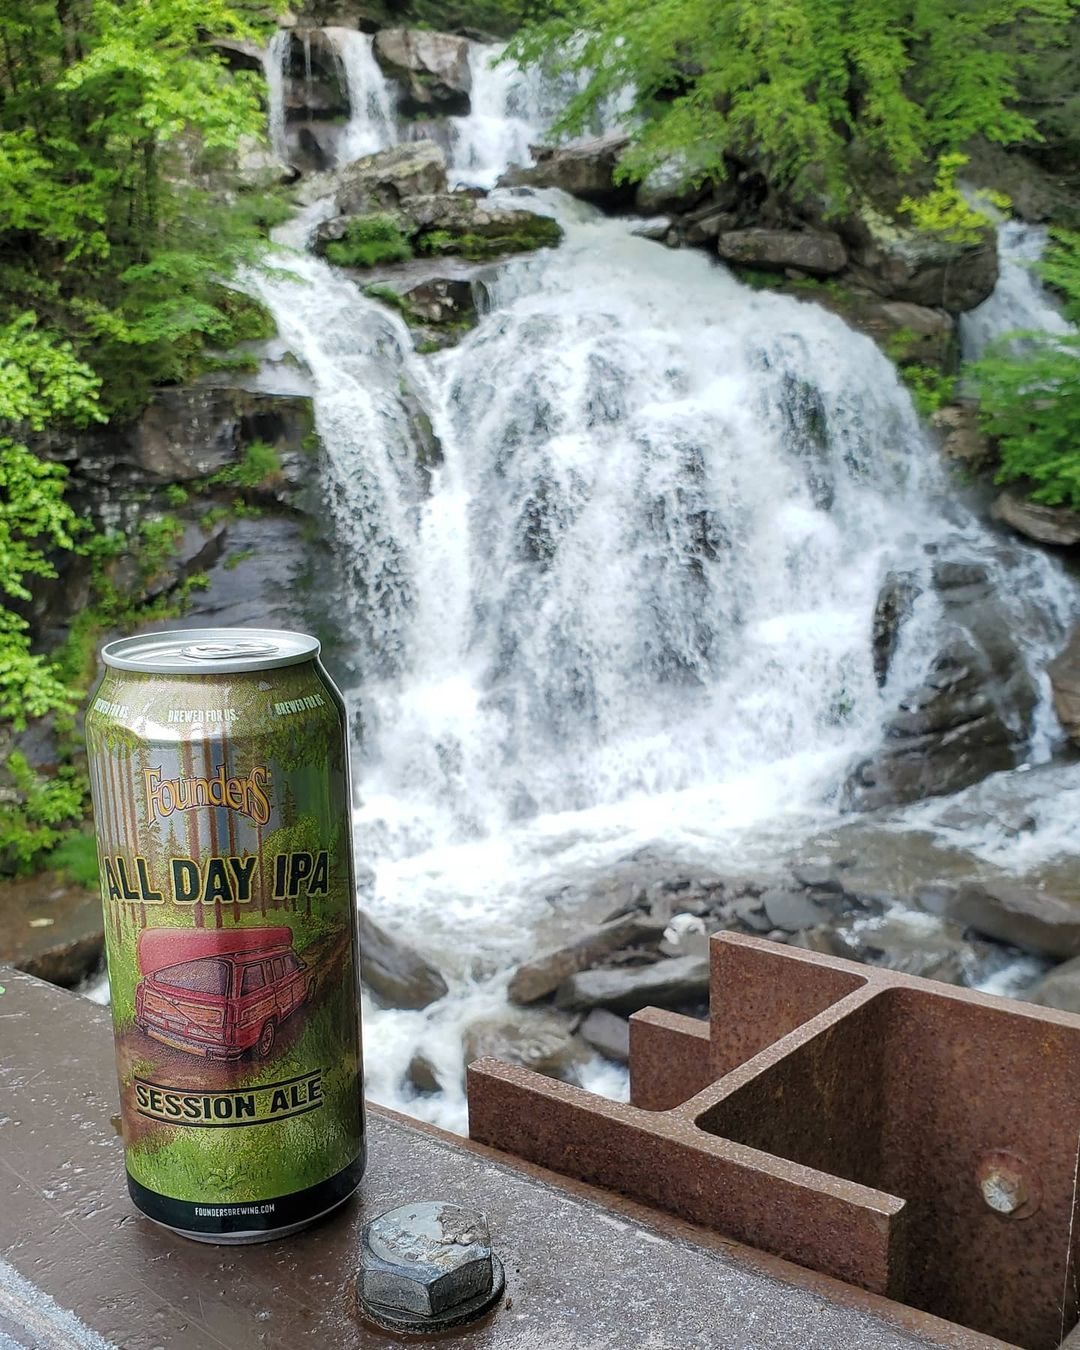 A large can of All Day IPA in front of a waterfall.